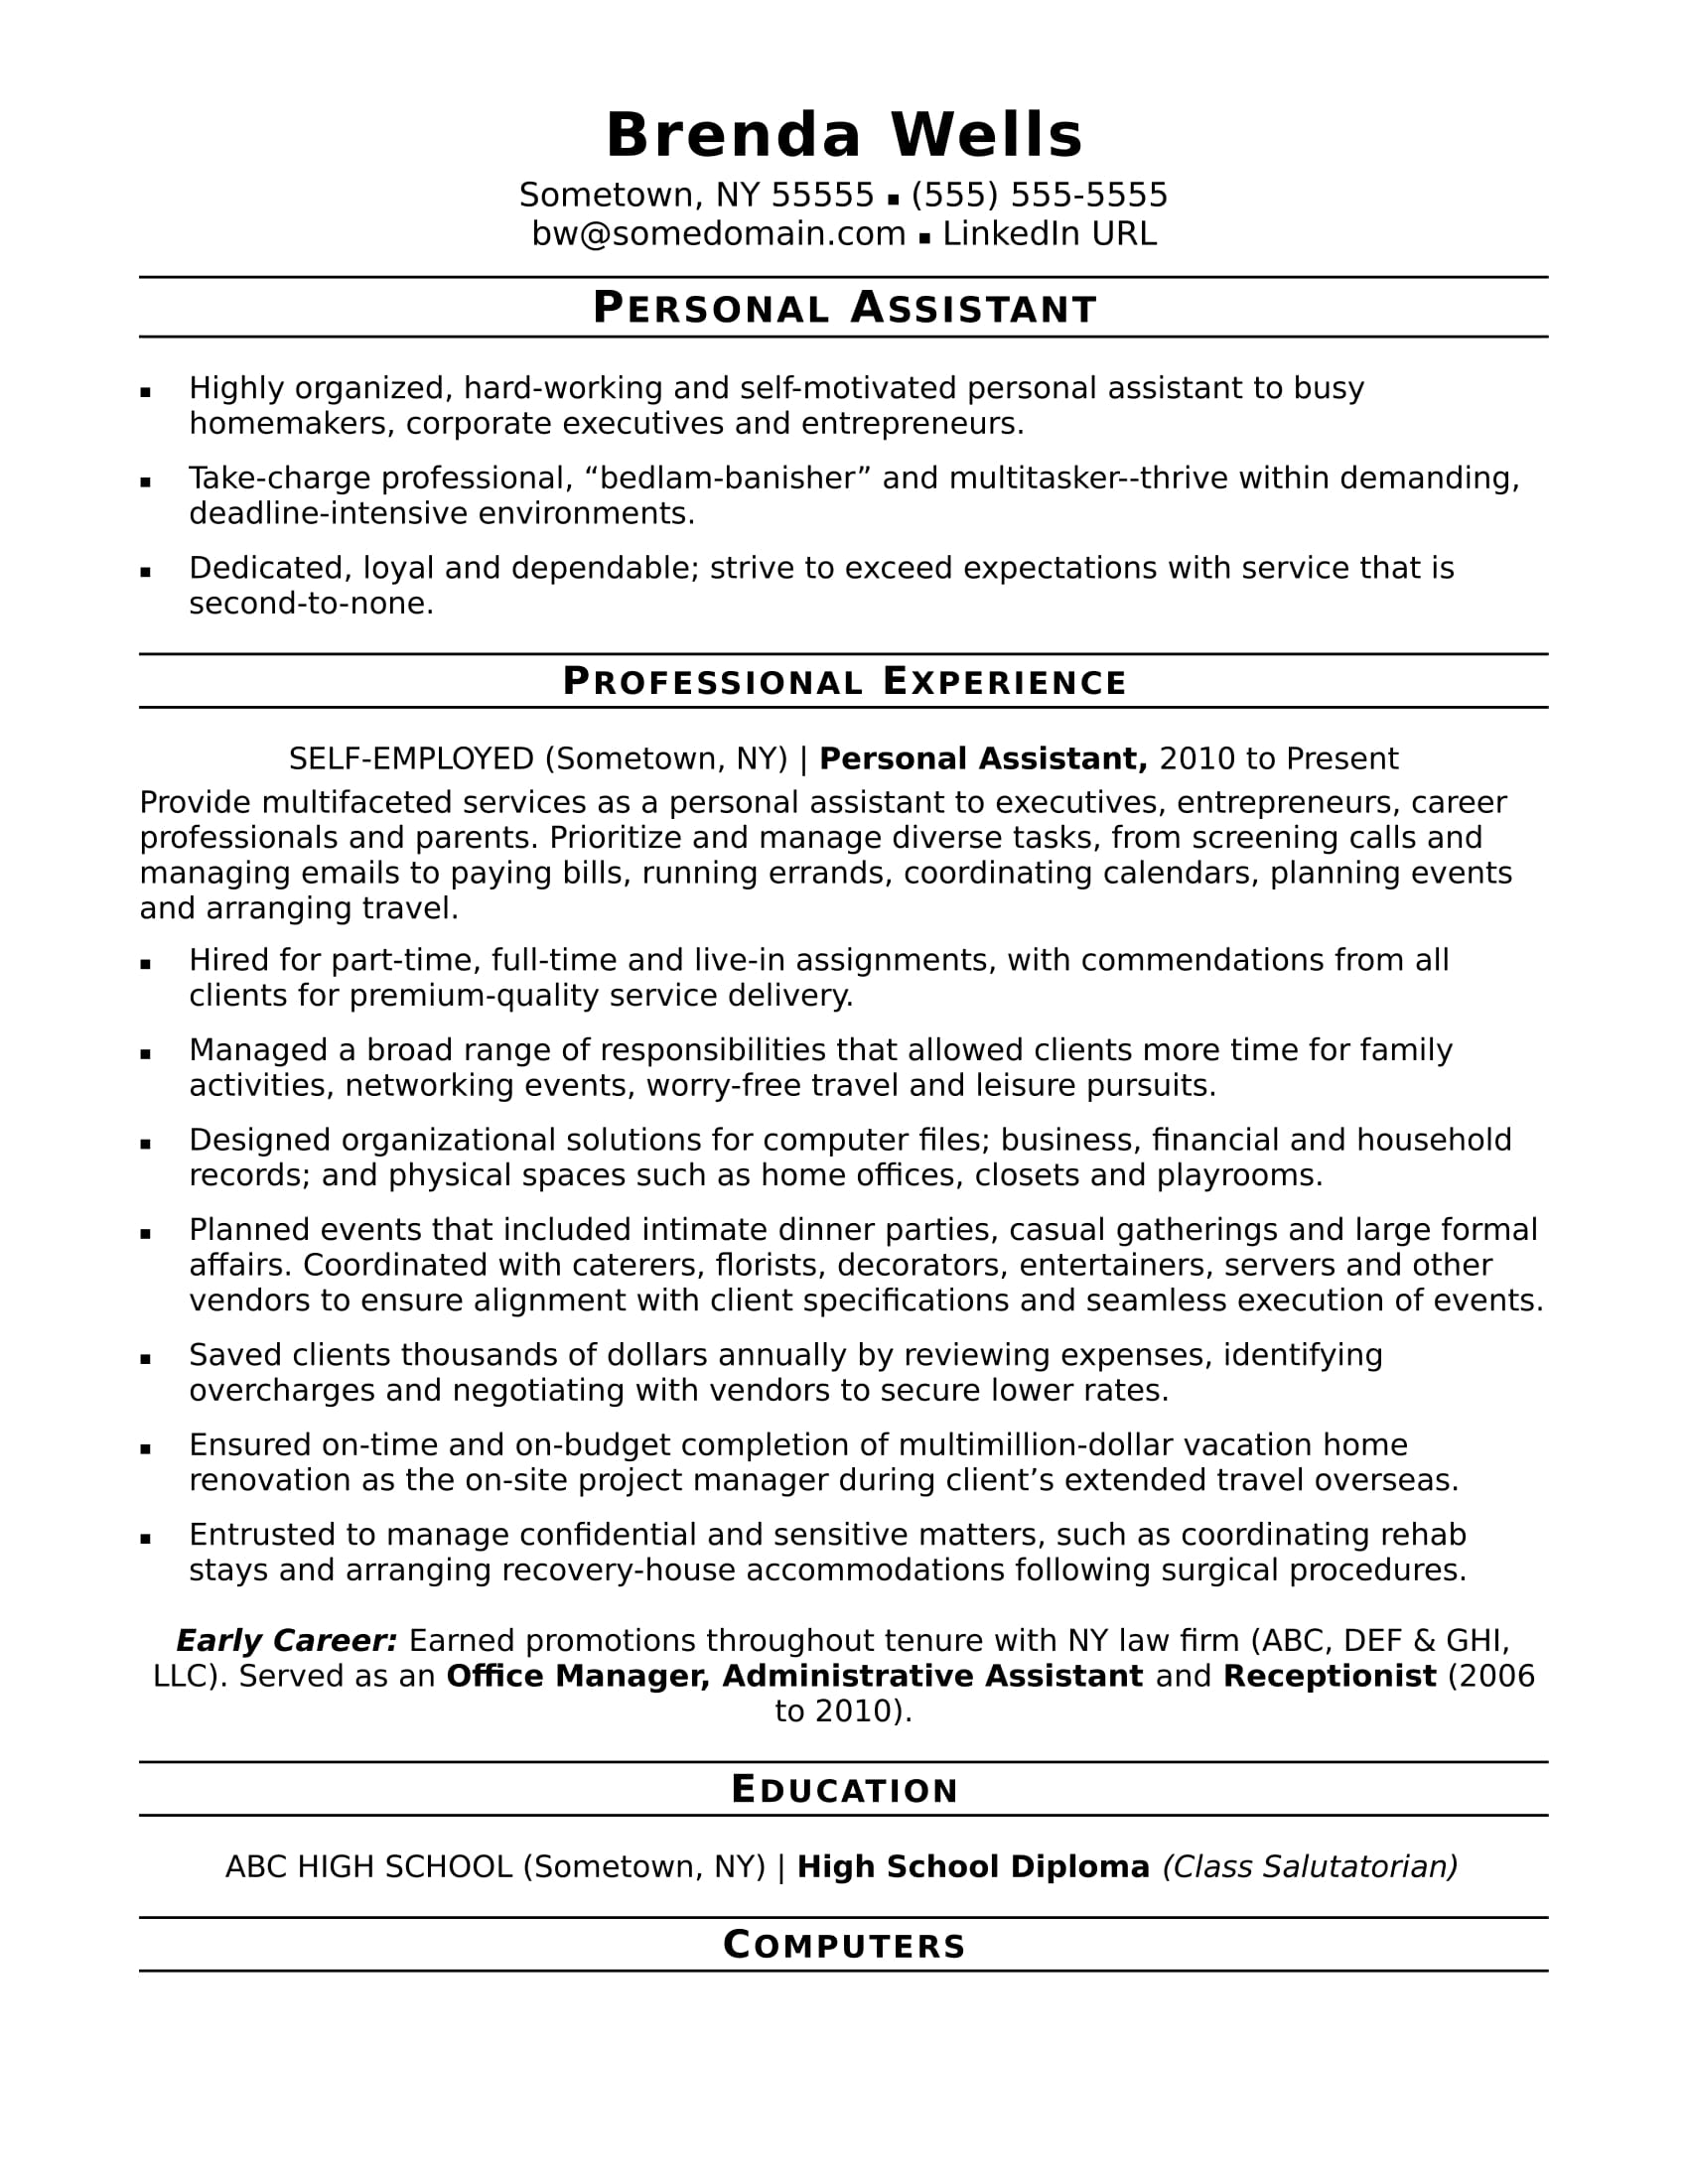 personal assistant resume sample monster law school template recent graduate self Resume Law School Resume Template Download